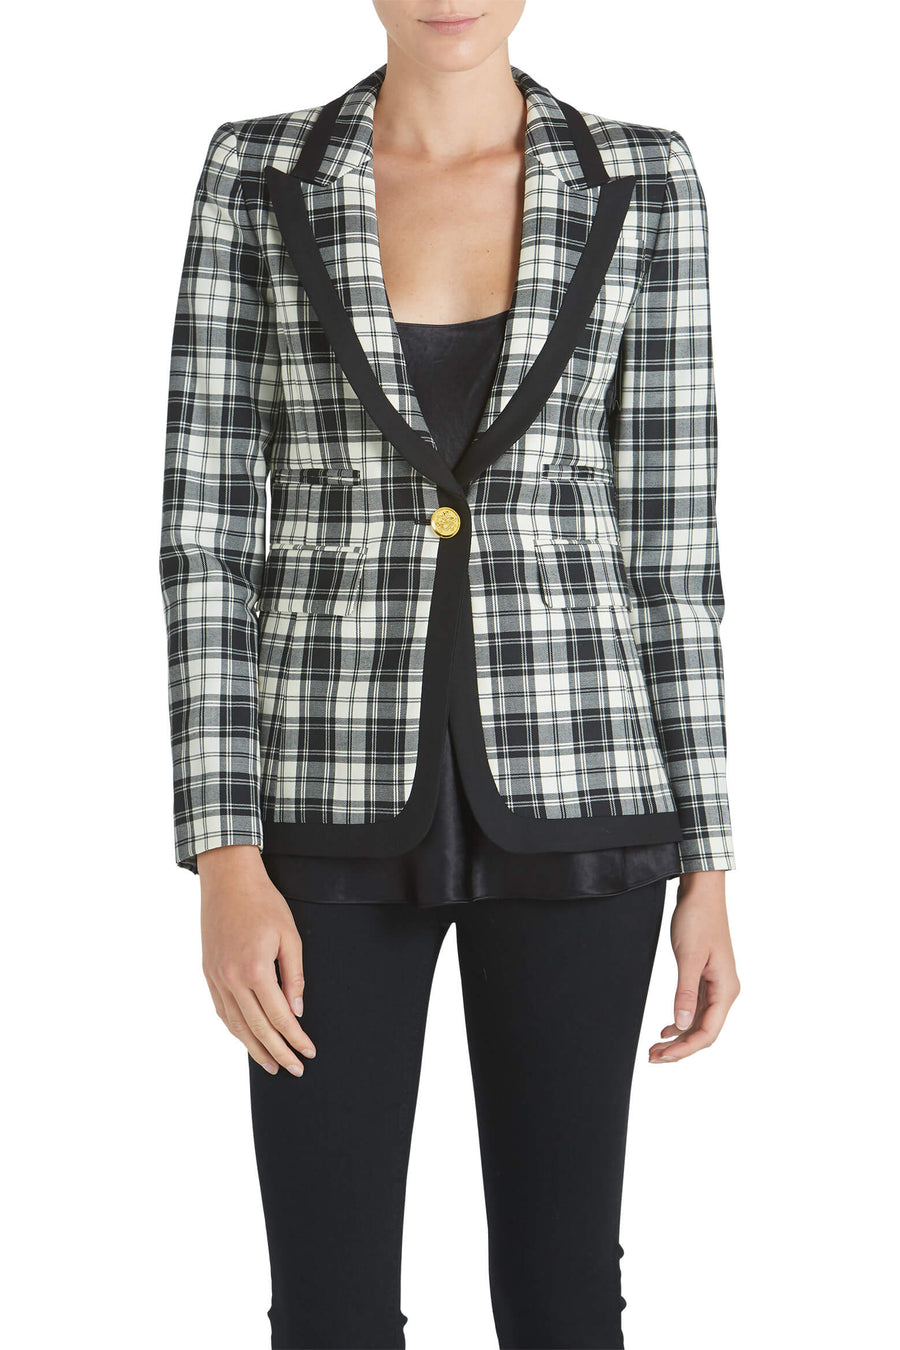 Smythe Taped Peaked Lapel Blazer from The New Trend